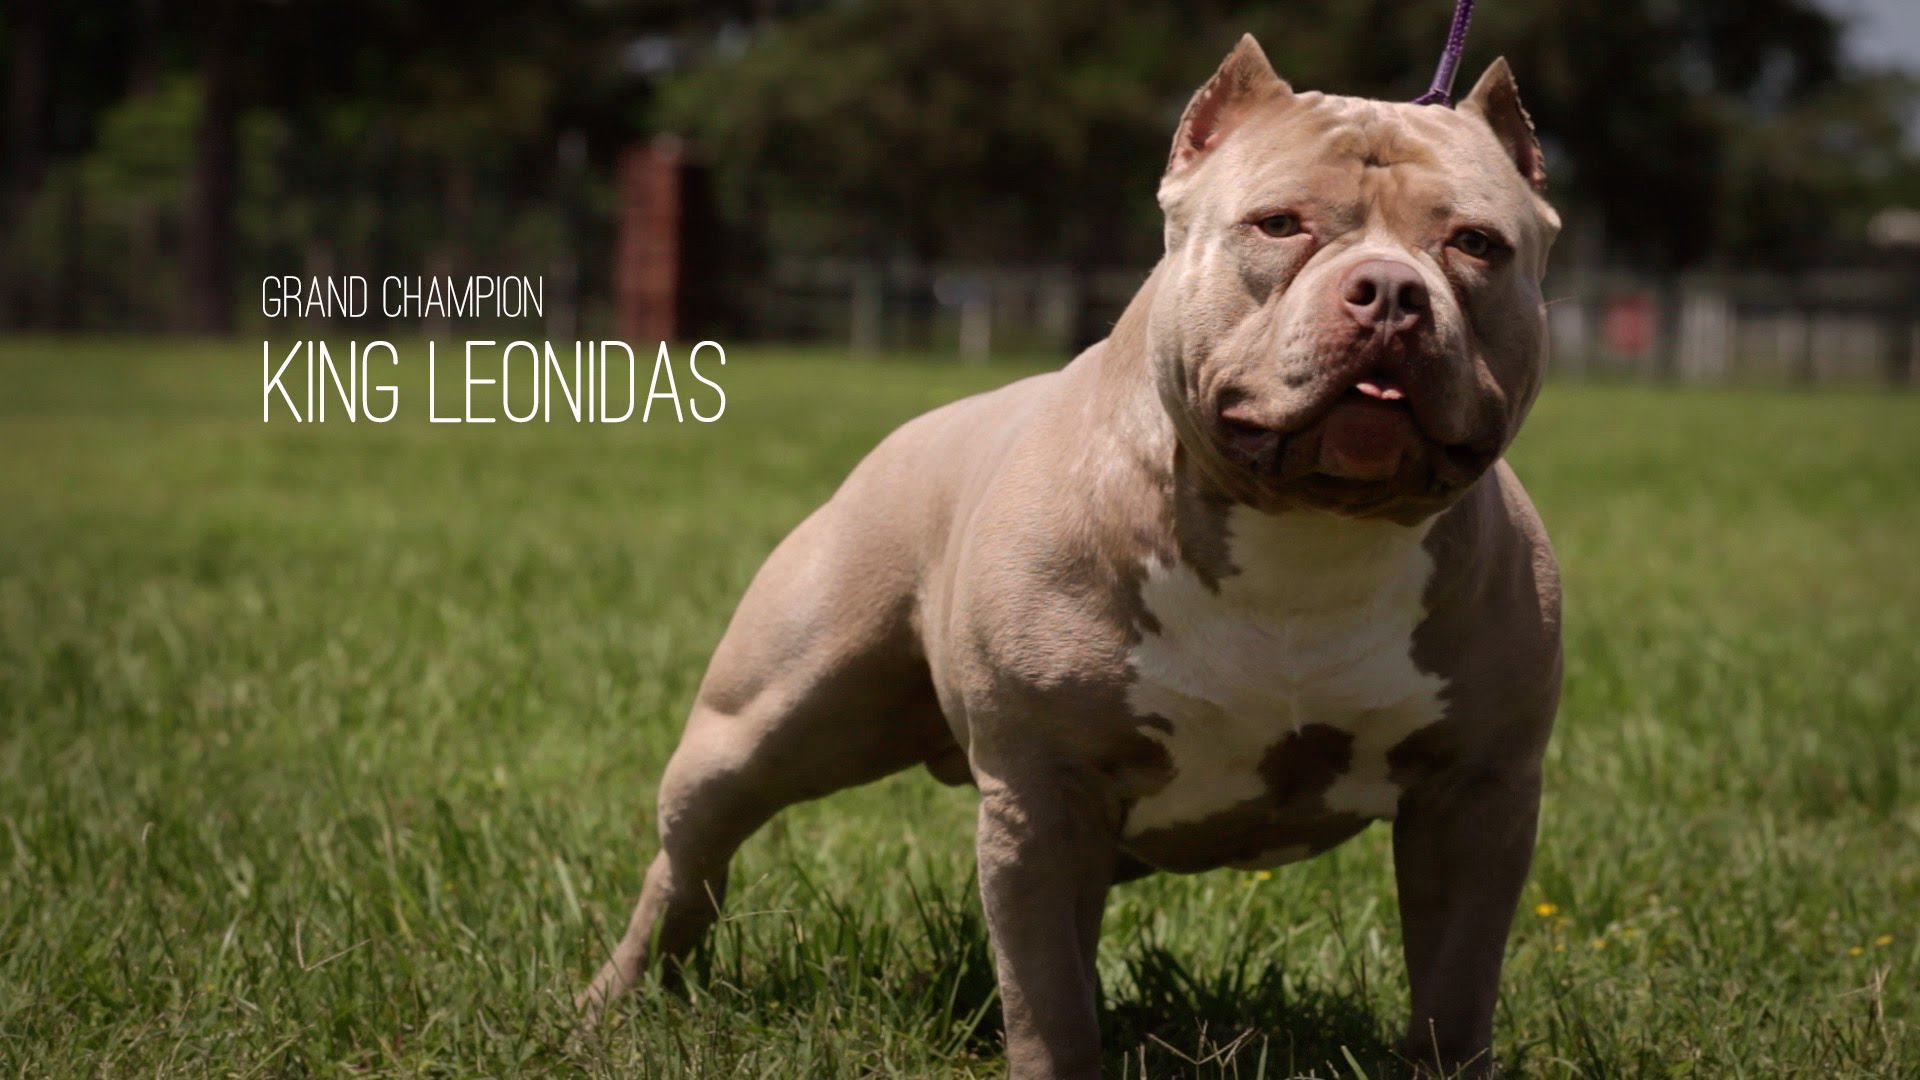 American Bully Dog of the Day King Leonidas the Grand